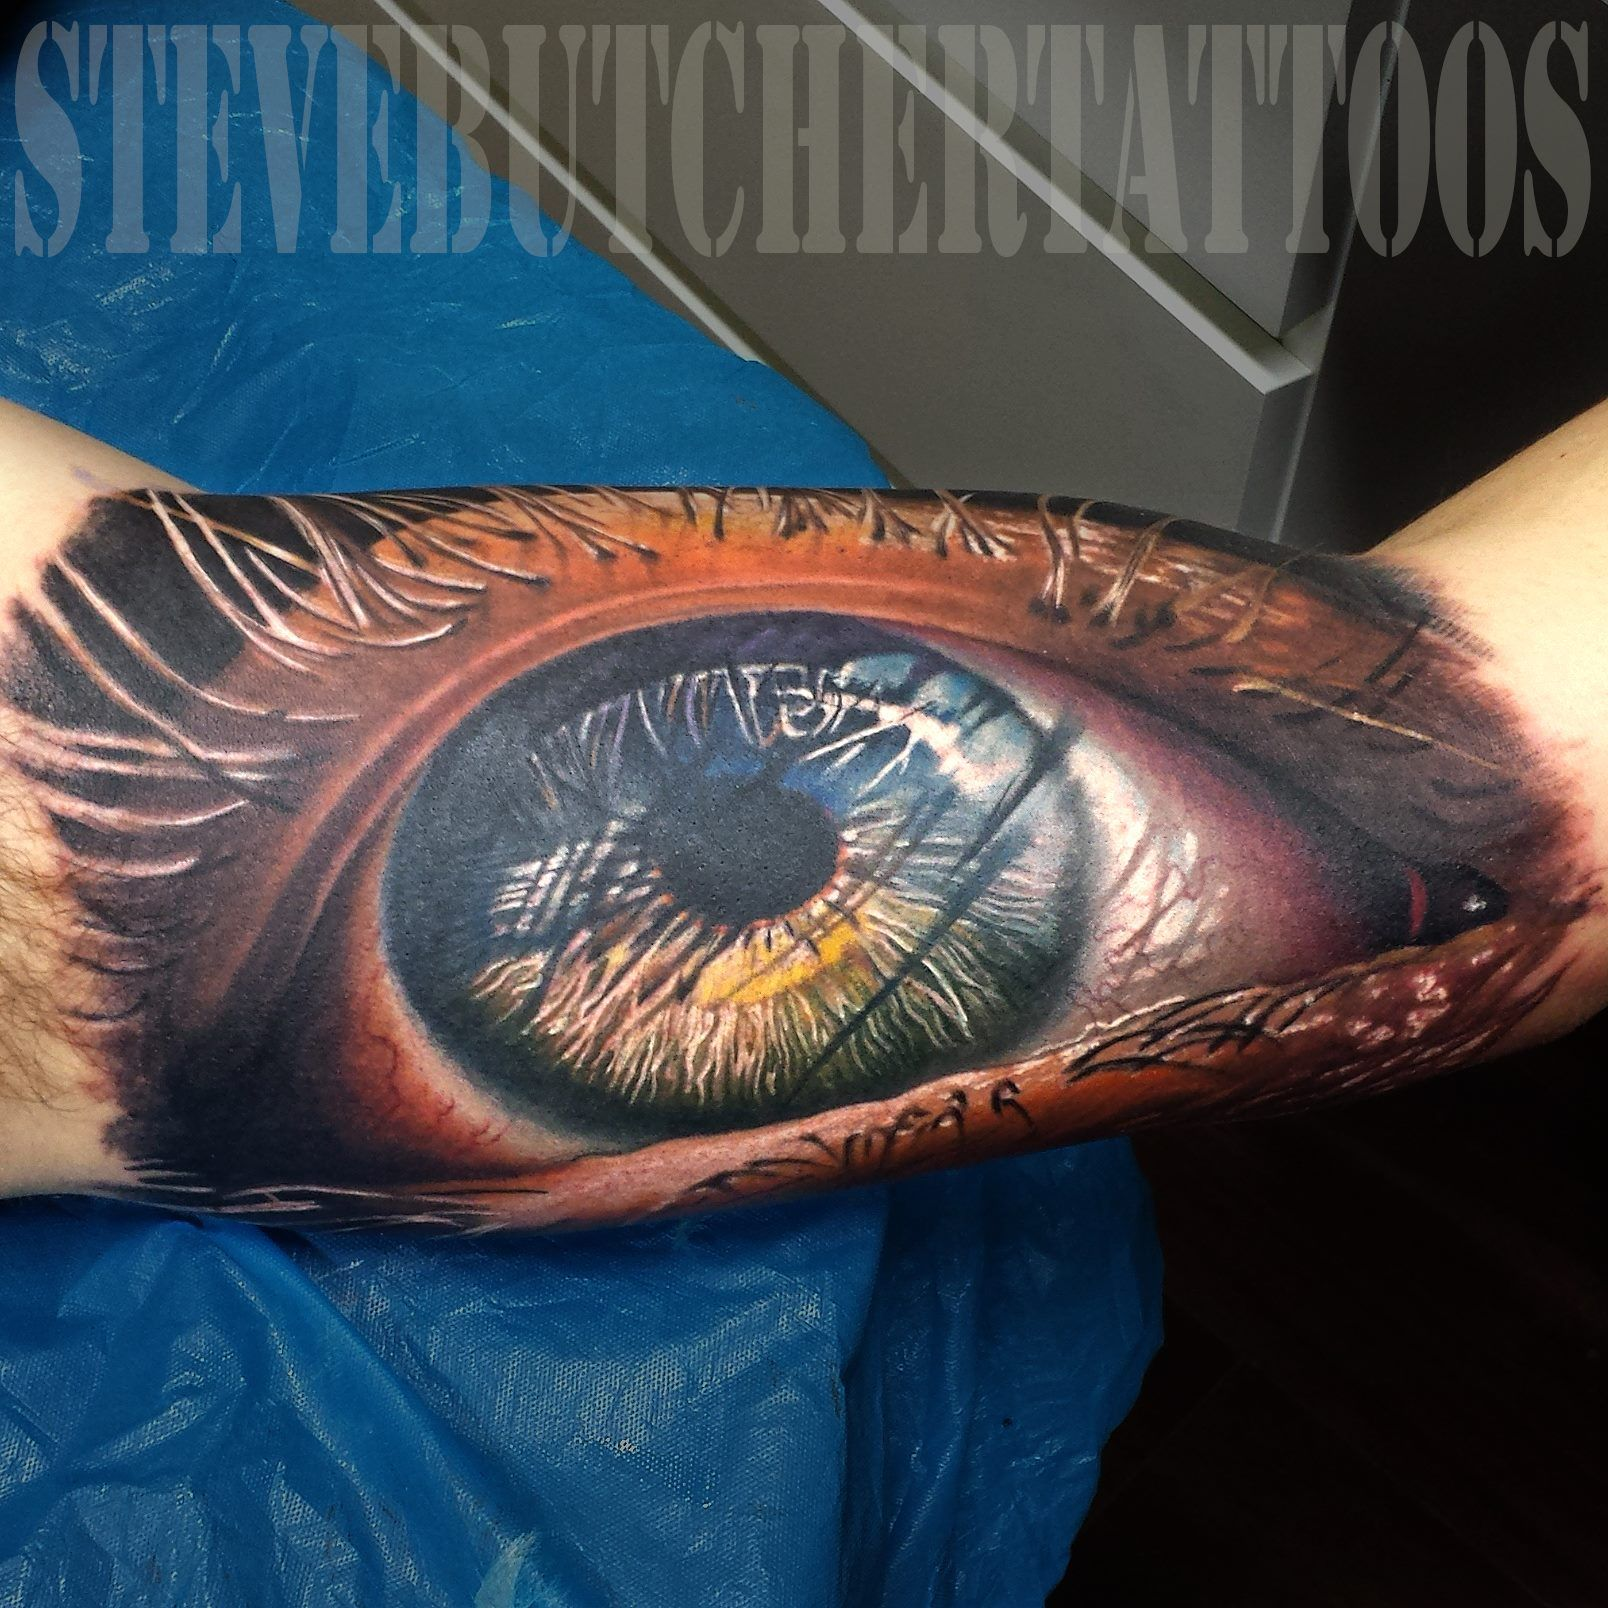 Incredible detail on this eye tattoo done by steve using